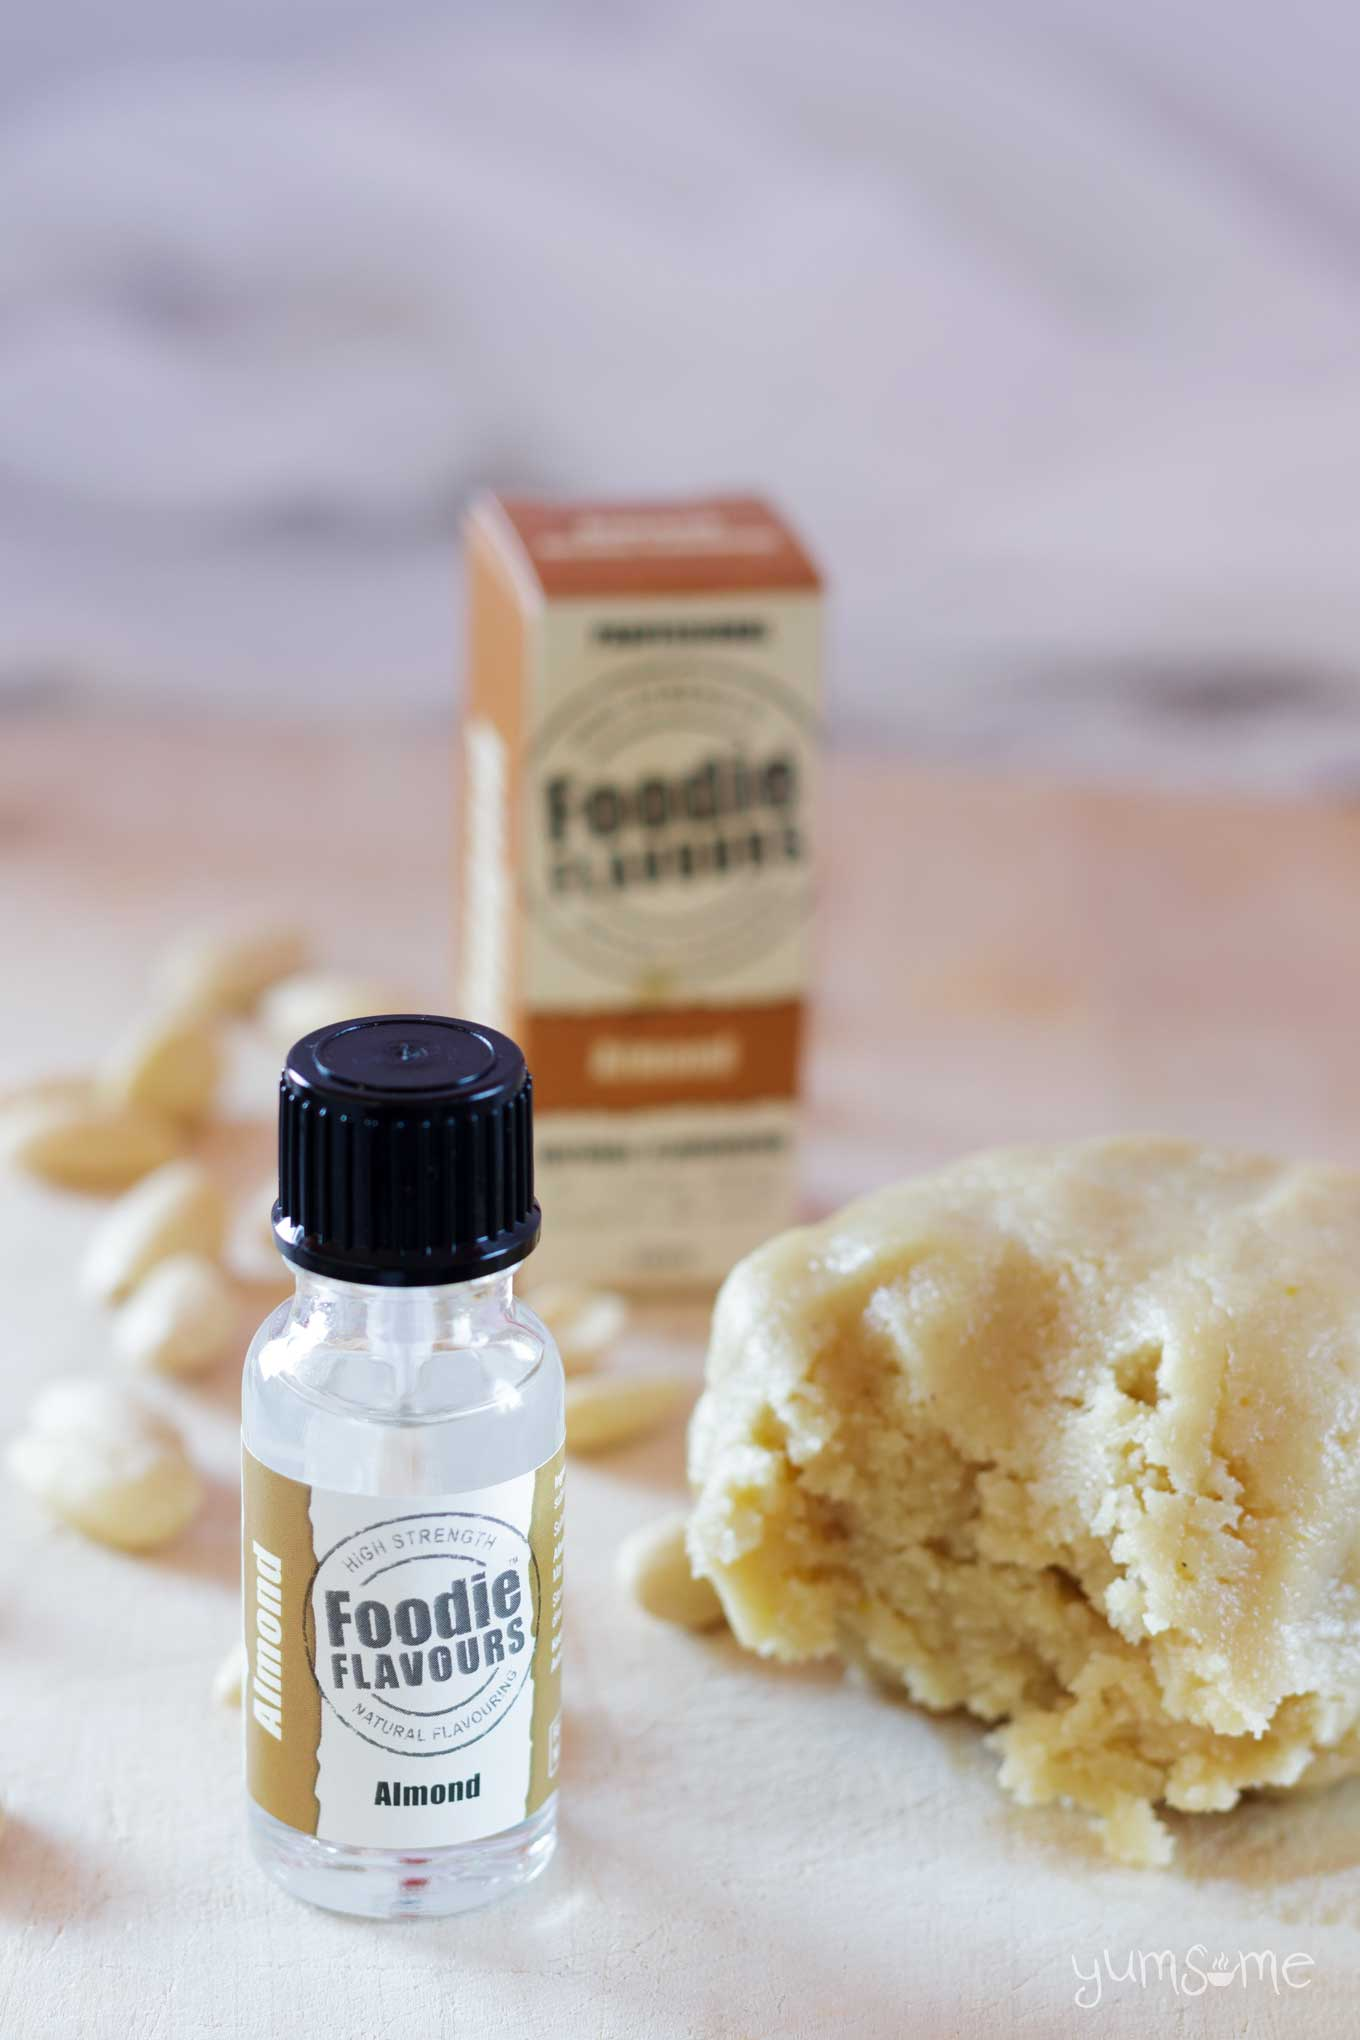 foodie flavours almond flavouring and a ball of home-made marzipan | yumsome.com